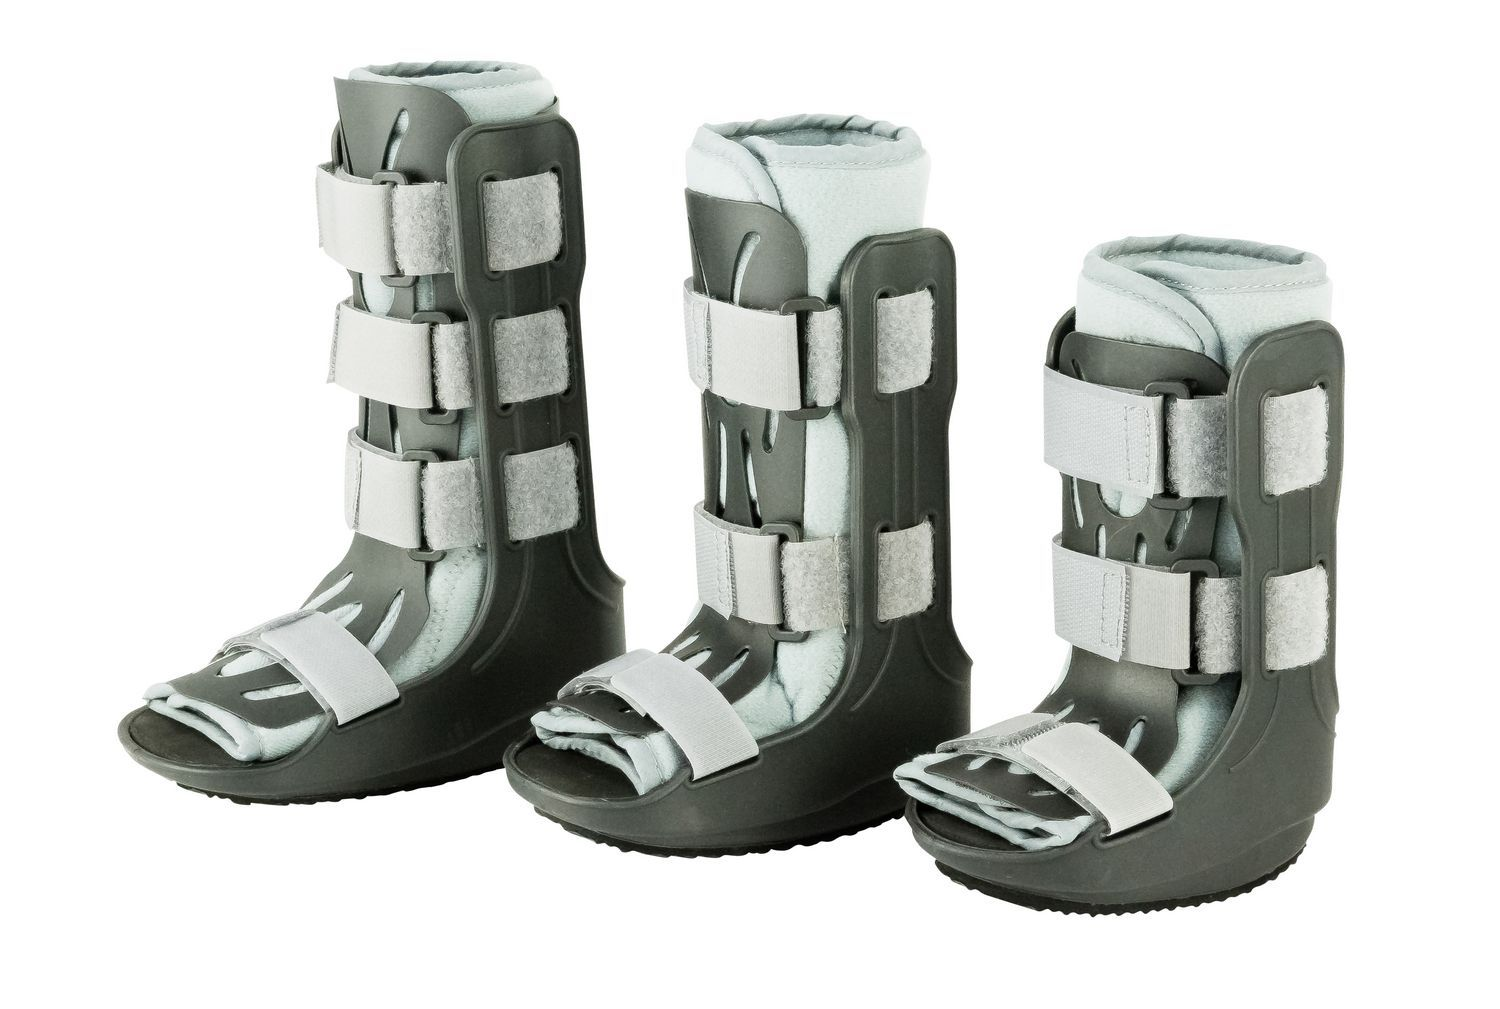 Pediatric Child S Medical Boot Kids Fracture Boot Fracture